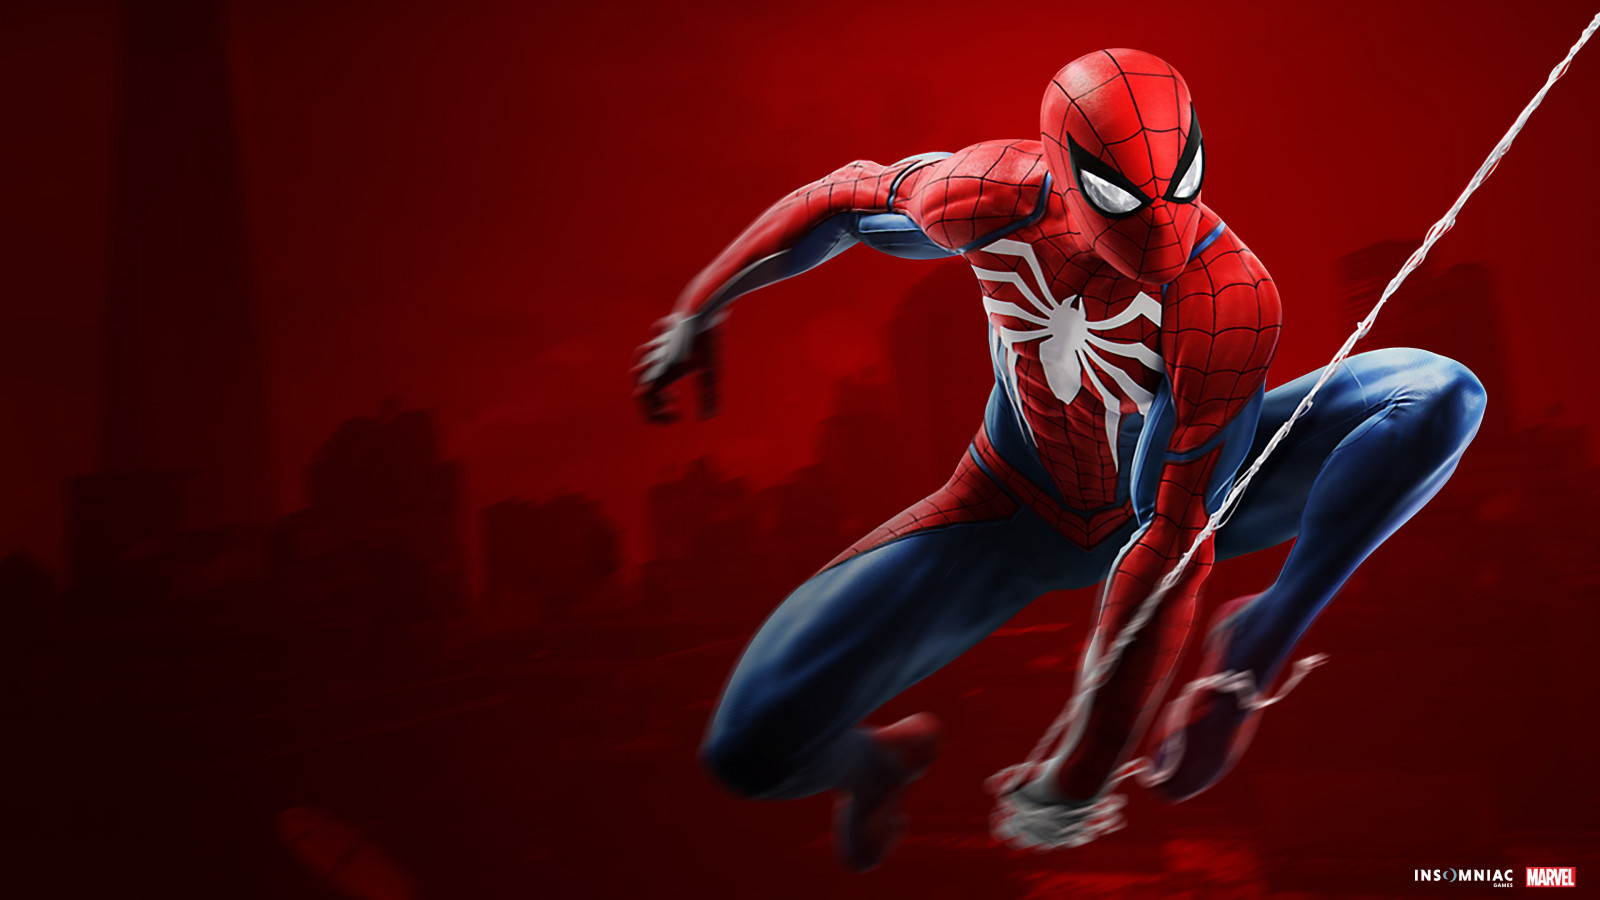 Spider Man game on PS4 wallpaper 1600x900